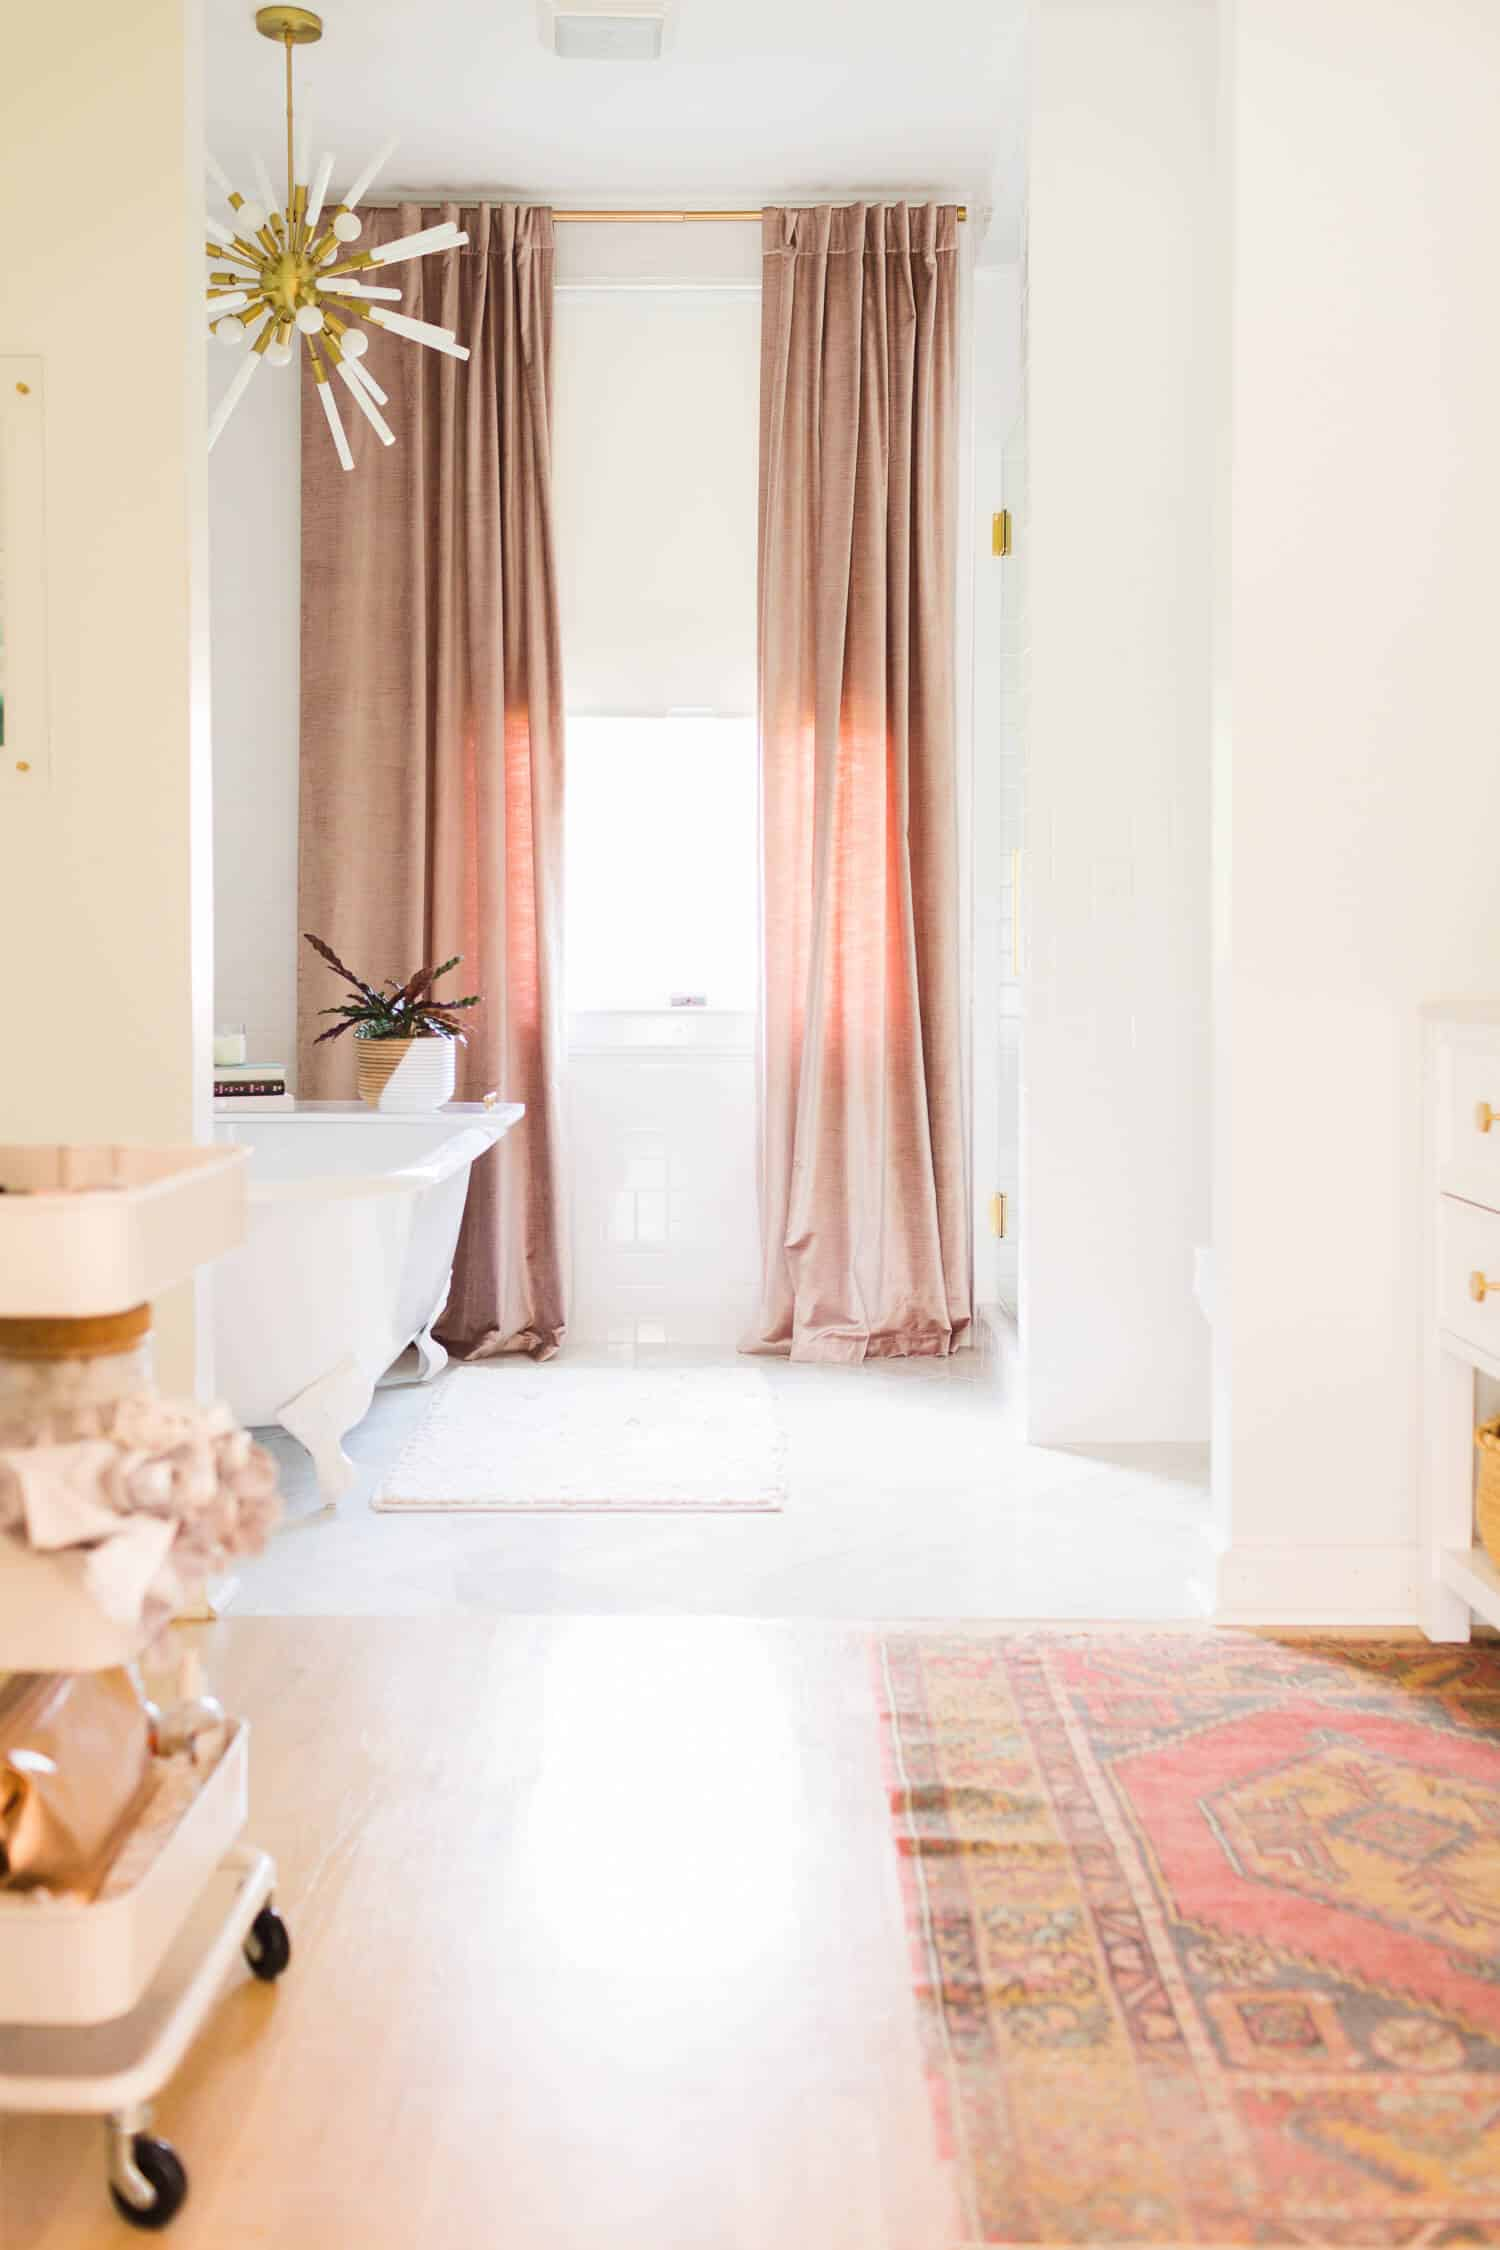 bathroom with floor to ceiling curtains